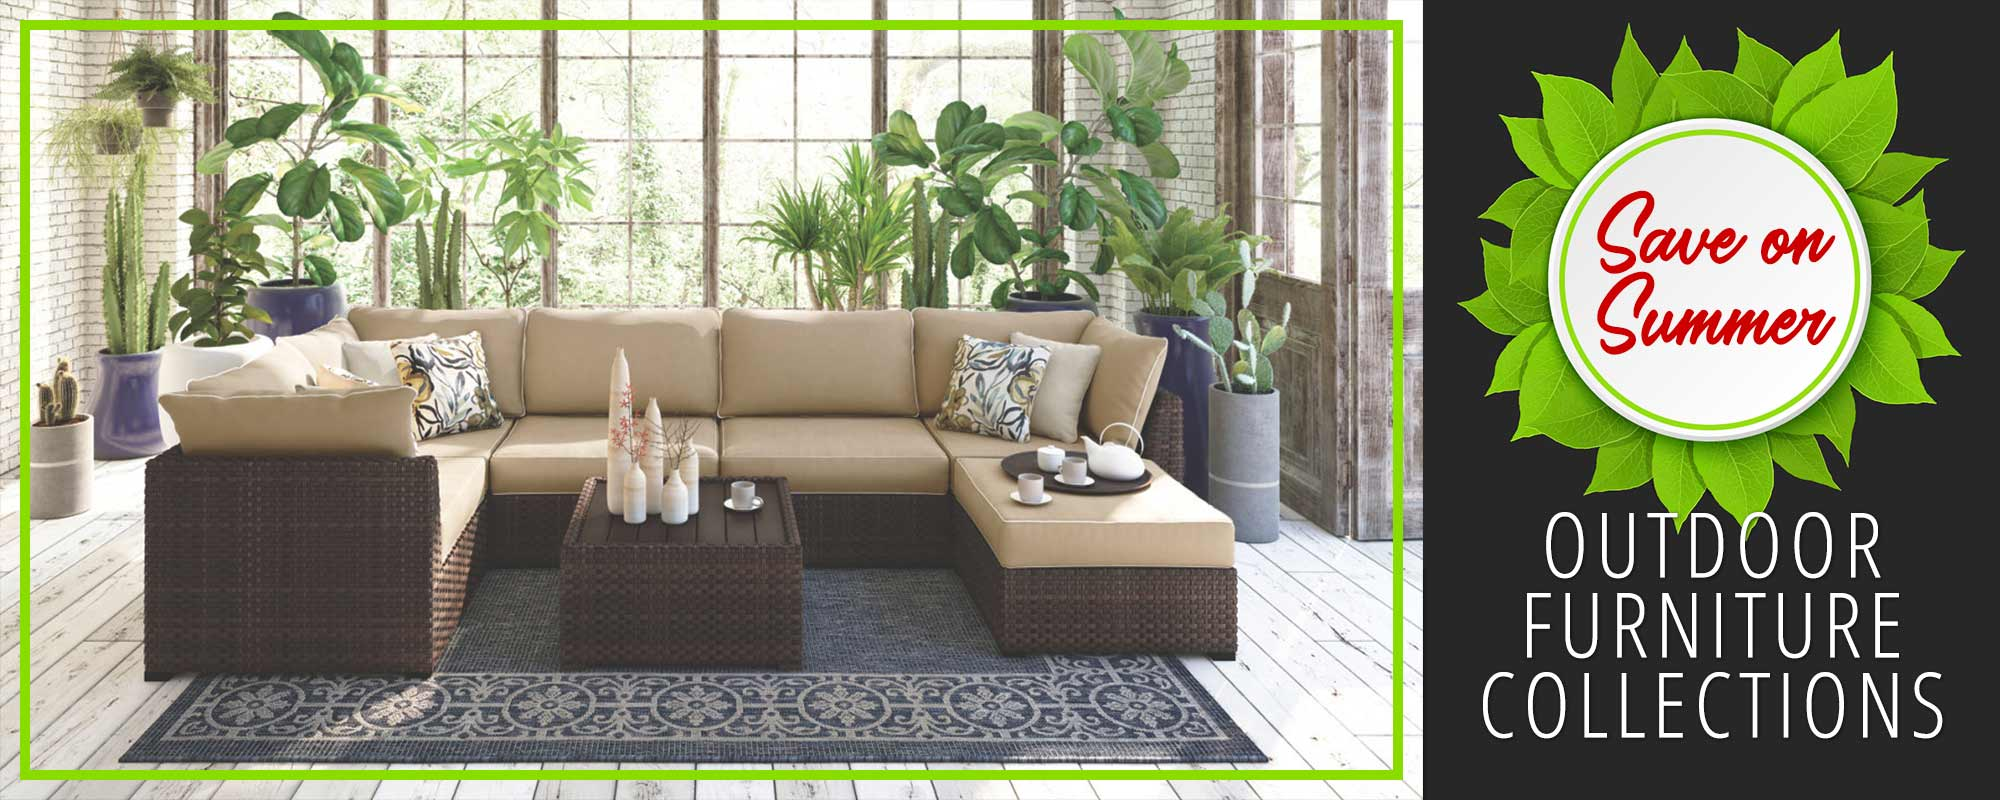 NC Gallery Furniture Homepage Hero Image